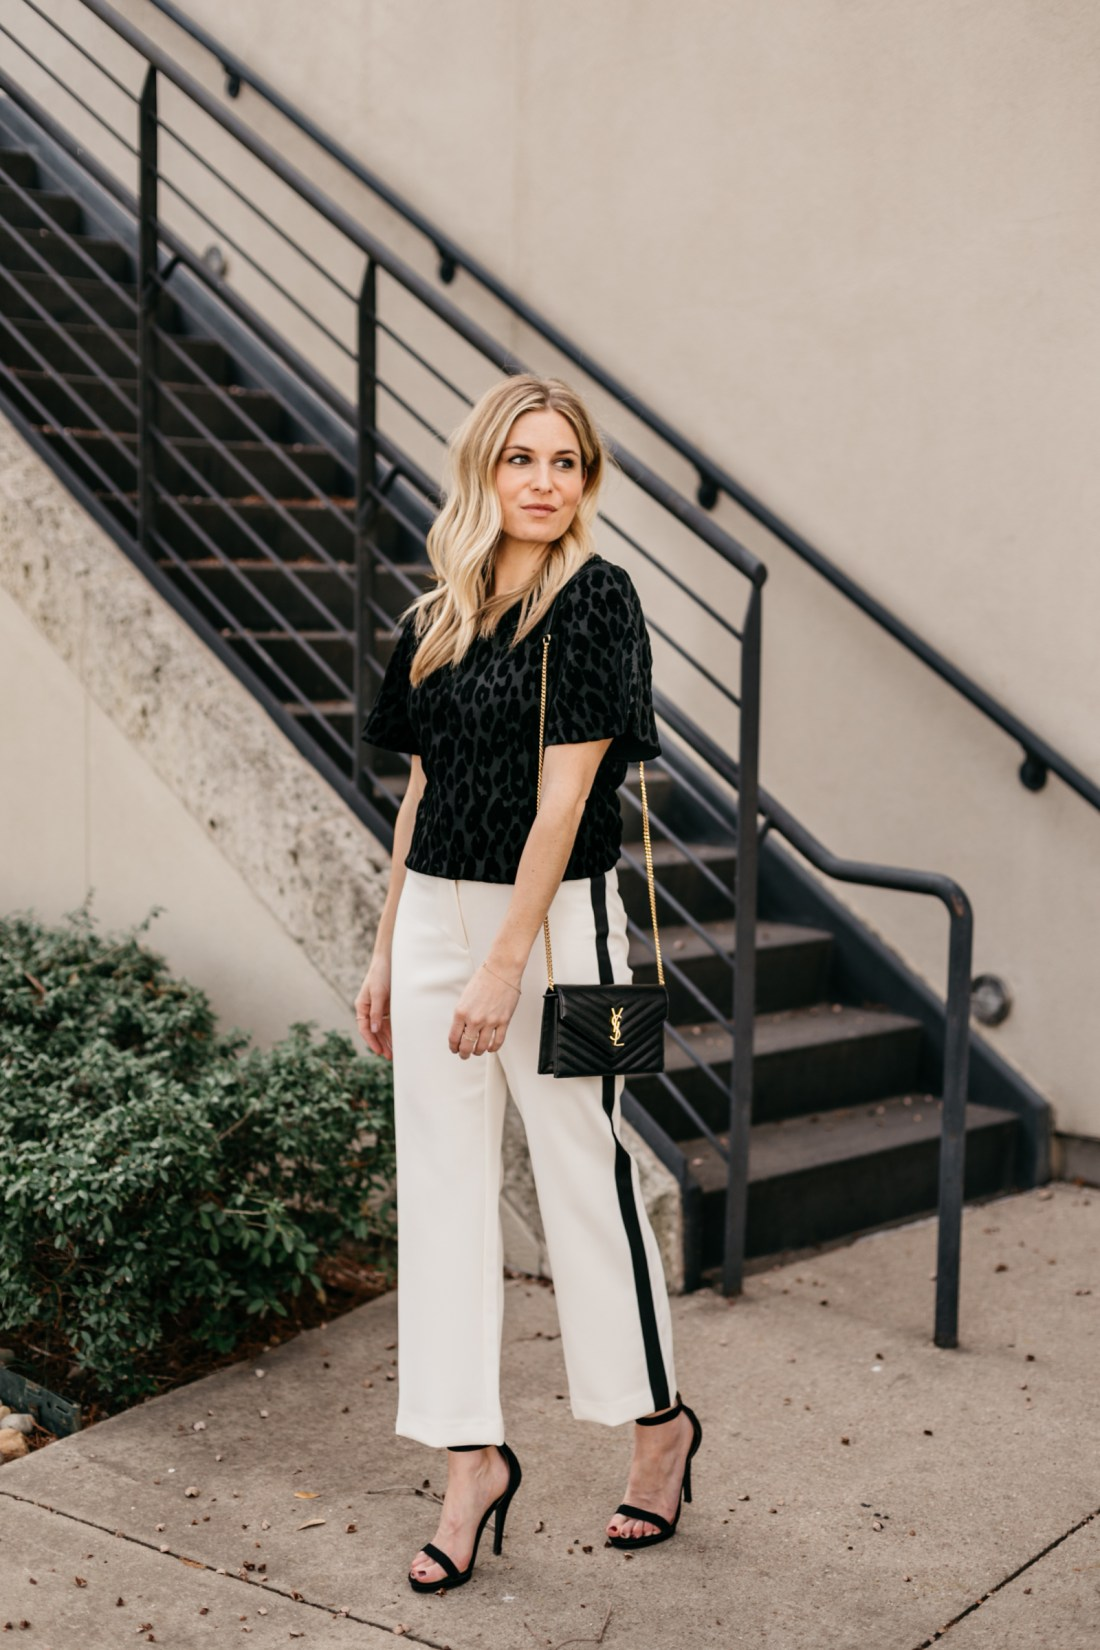 OUTFIT 3 Details:  White Wide Leg Stripe Pants // Black Short Sleeve Blouse // Black and Gold Crossbody Clutch // Black Strappy Heels